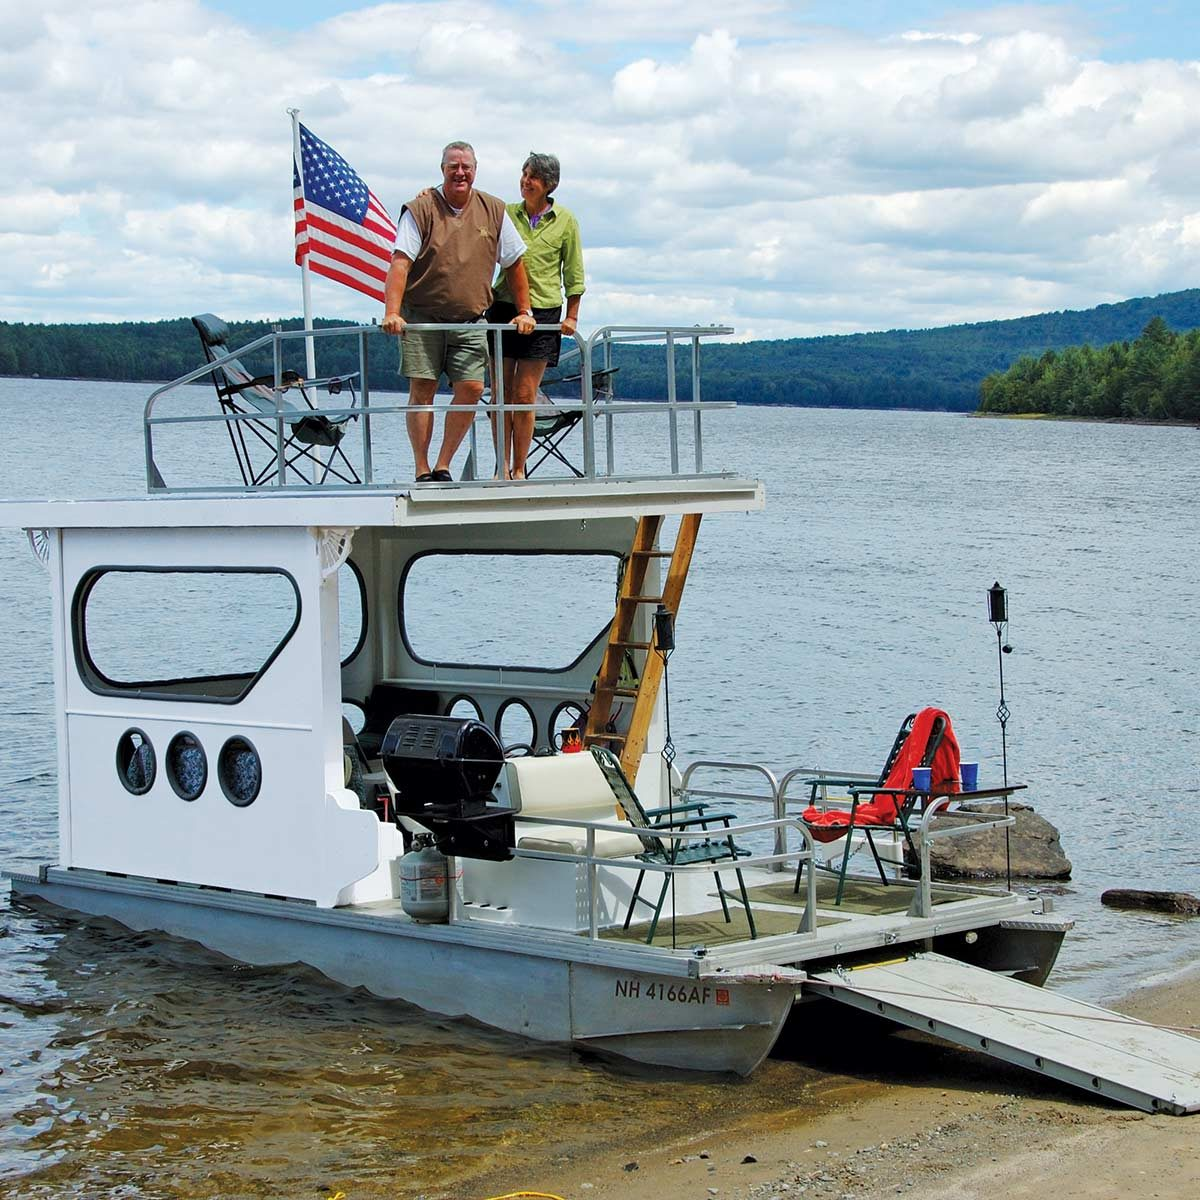 Rebuilt pontoon with covered deck and grill